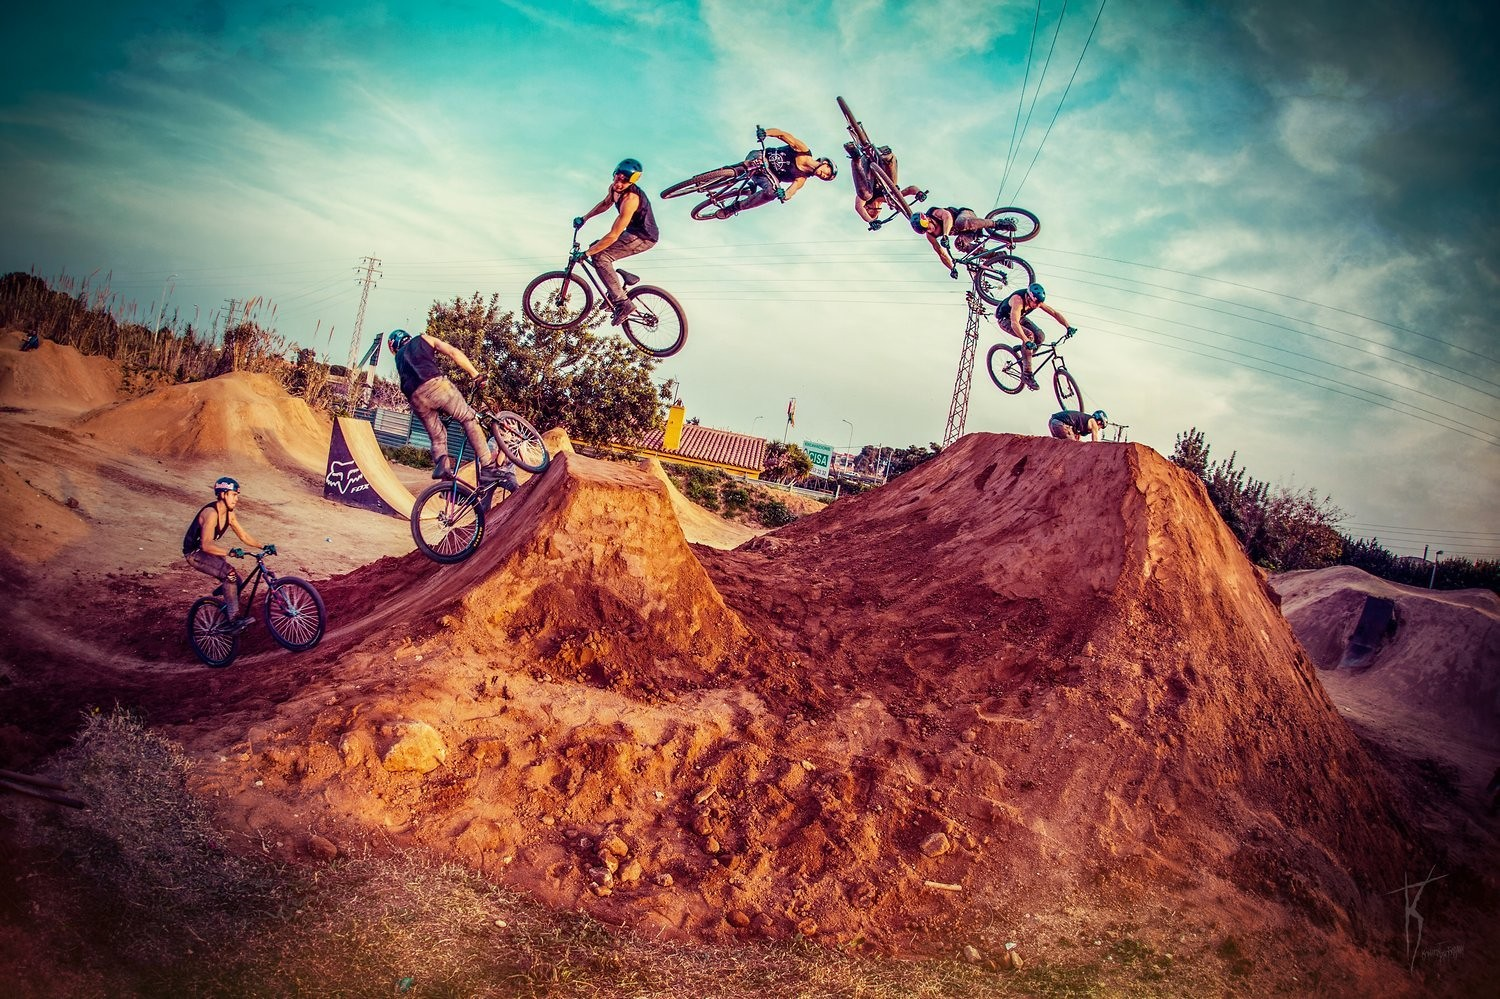 Szymon Godziek in Barcelona - Dartmoor Bikes - Mountain Biking Pictures - Vital MTB